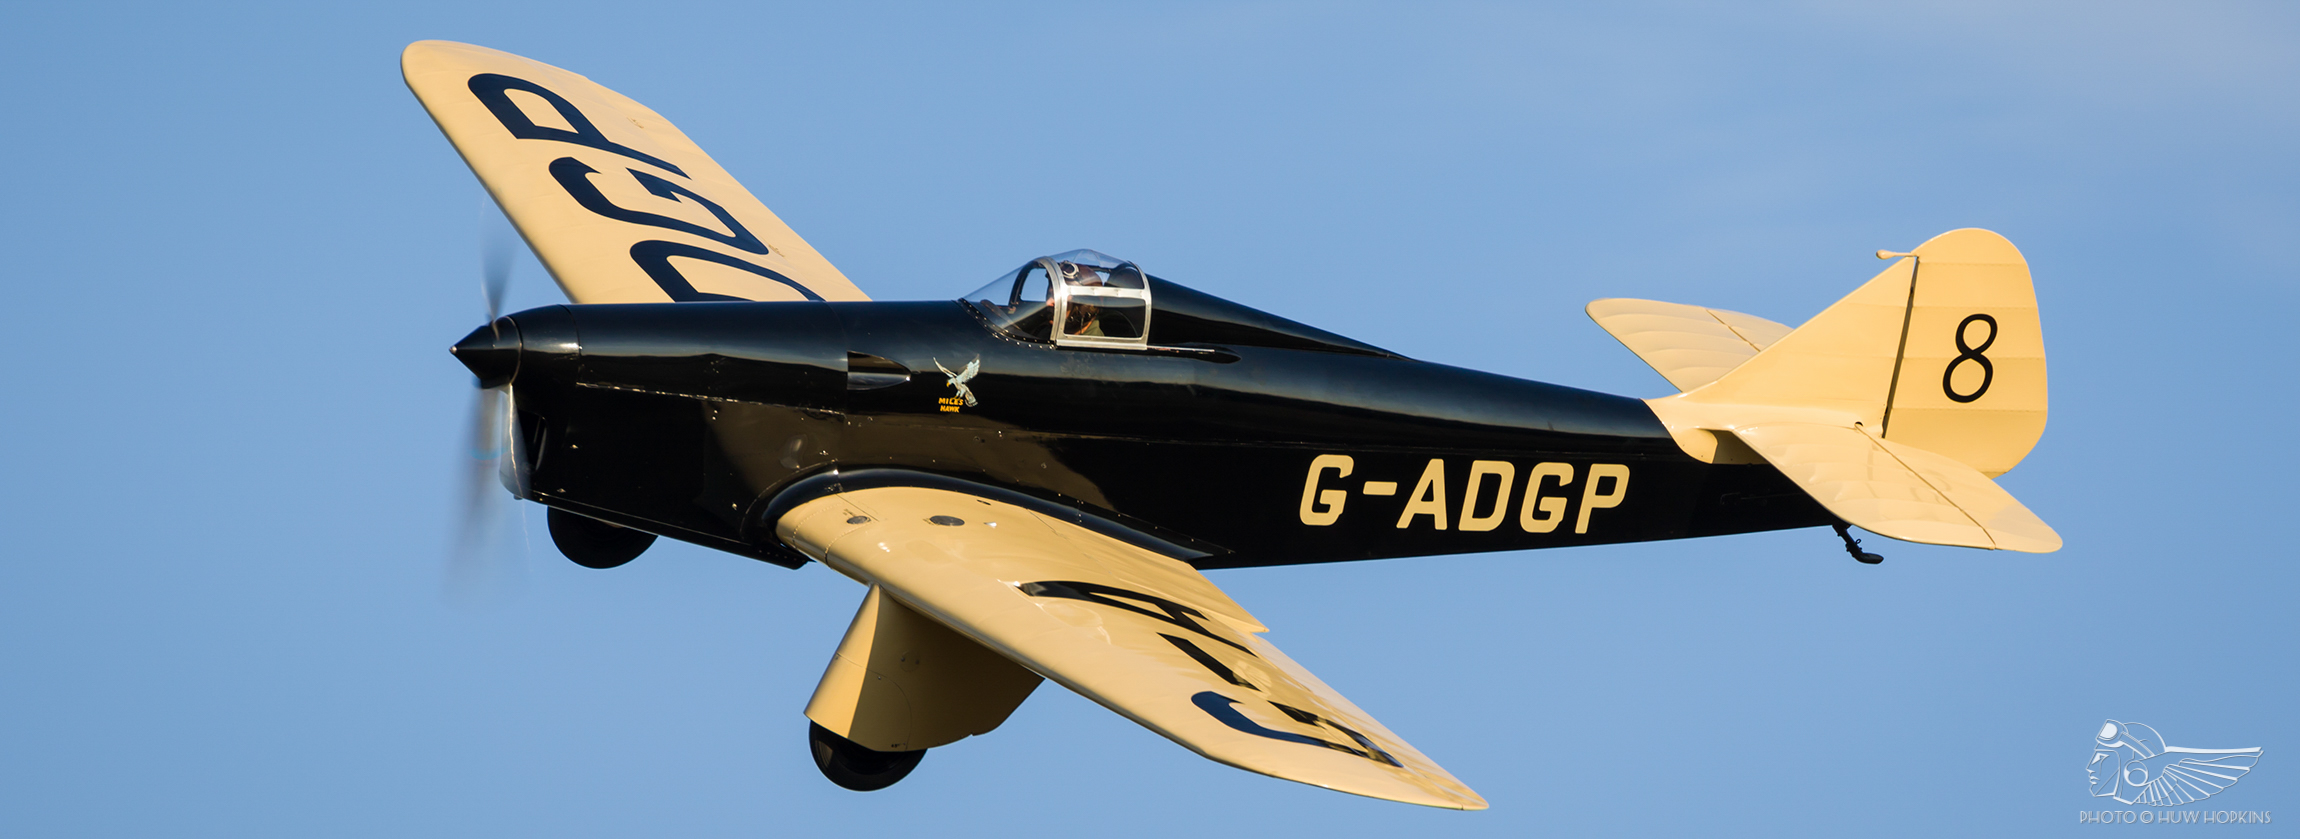 Shuttleworth's Family Airshow provides something for all